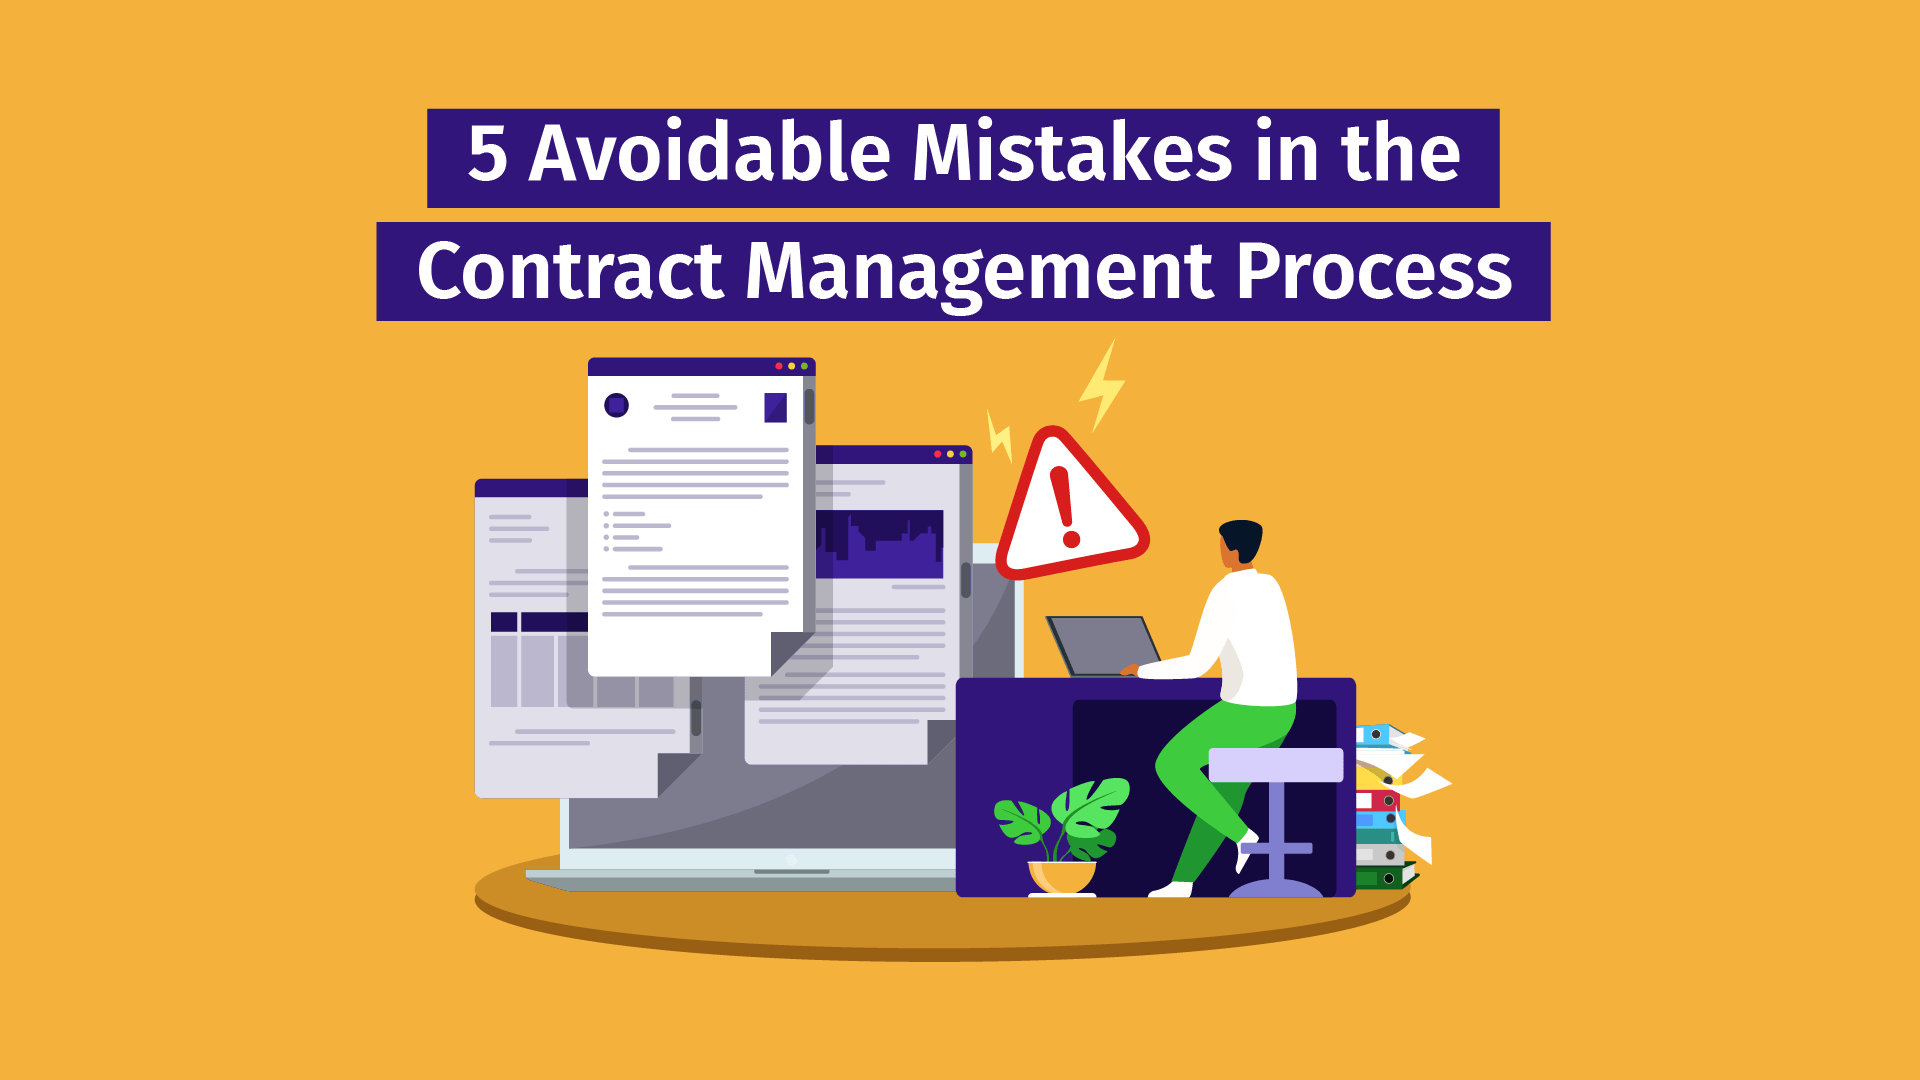 5 Avoidable Mistakes in the Contract Management Process